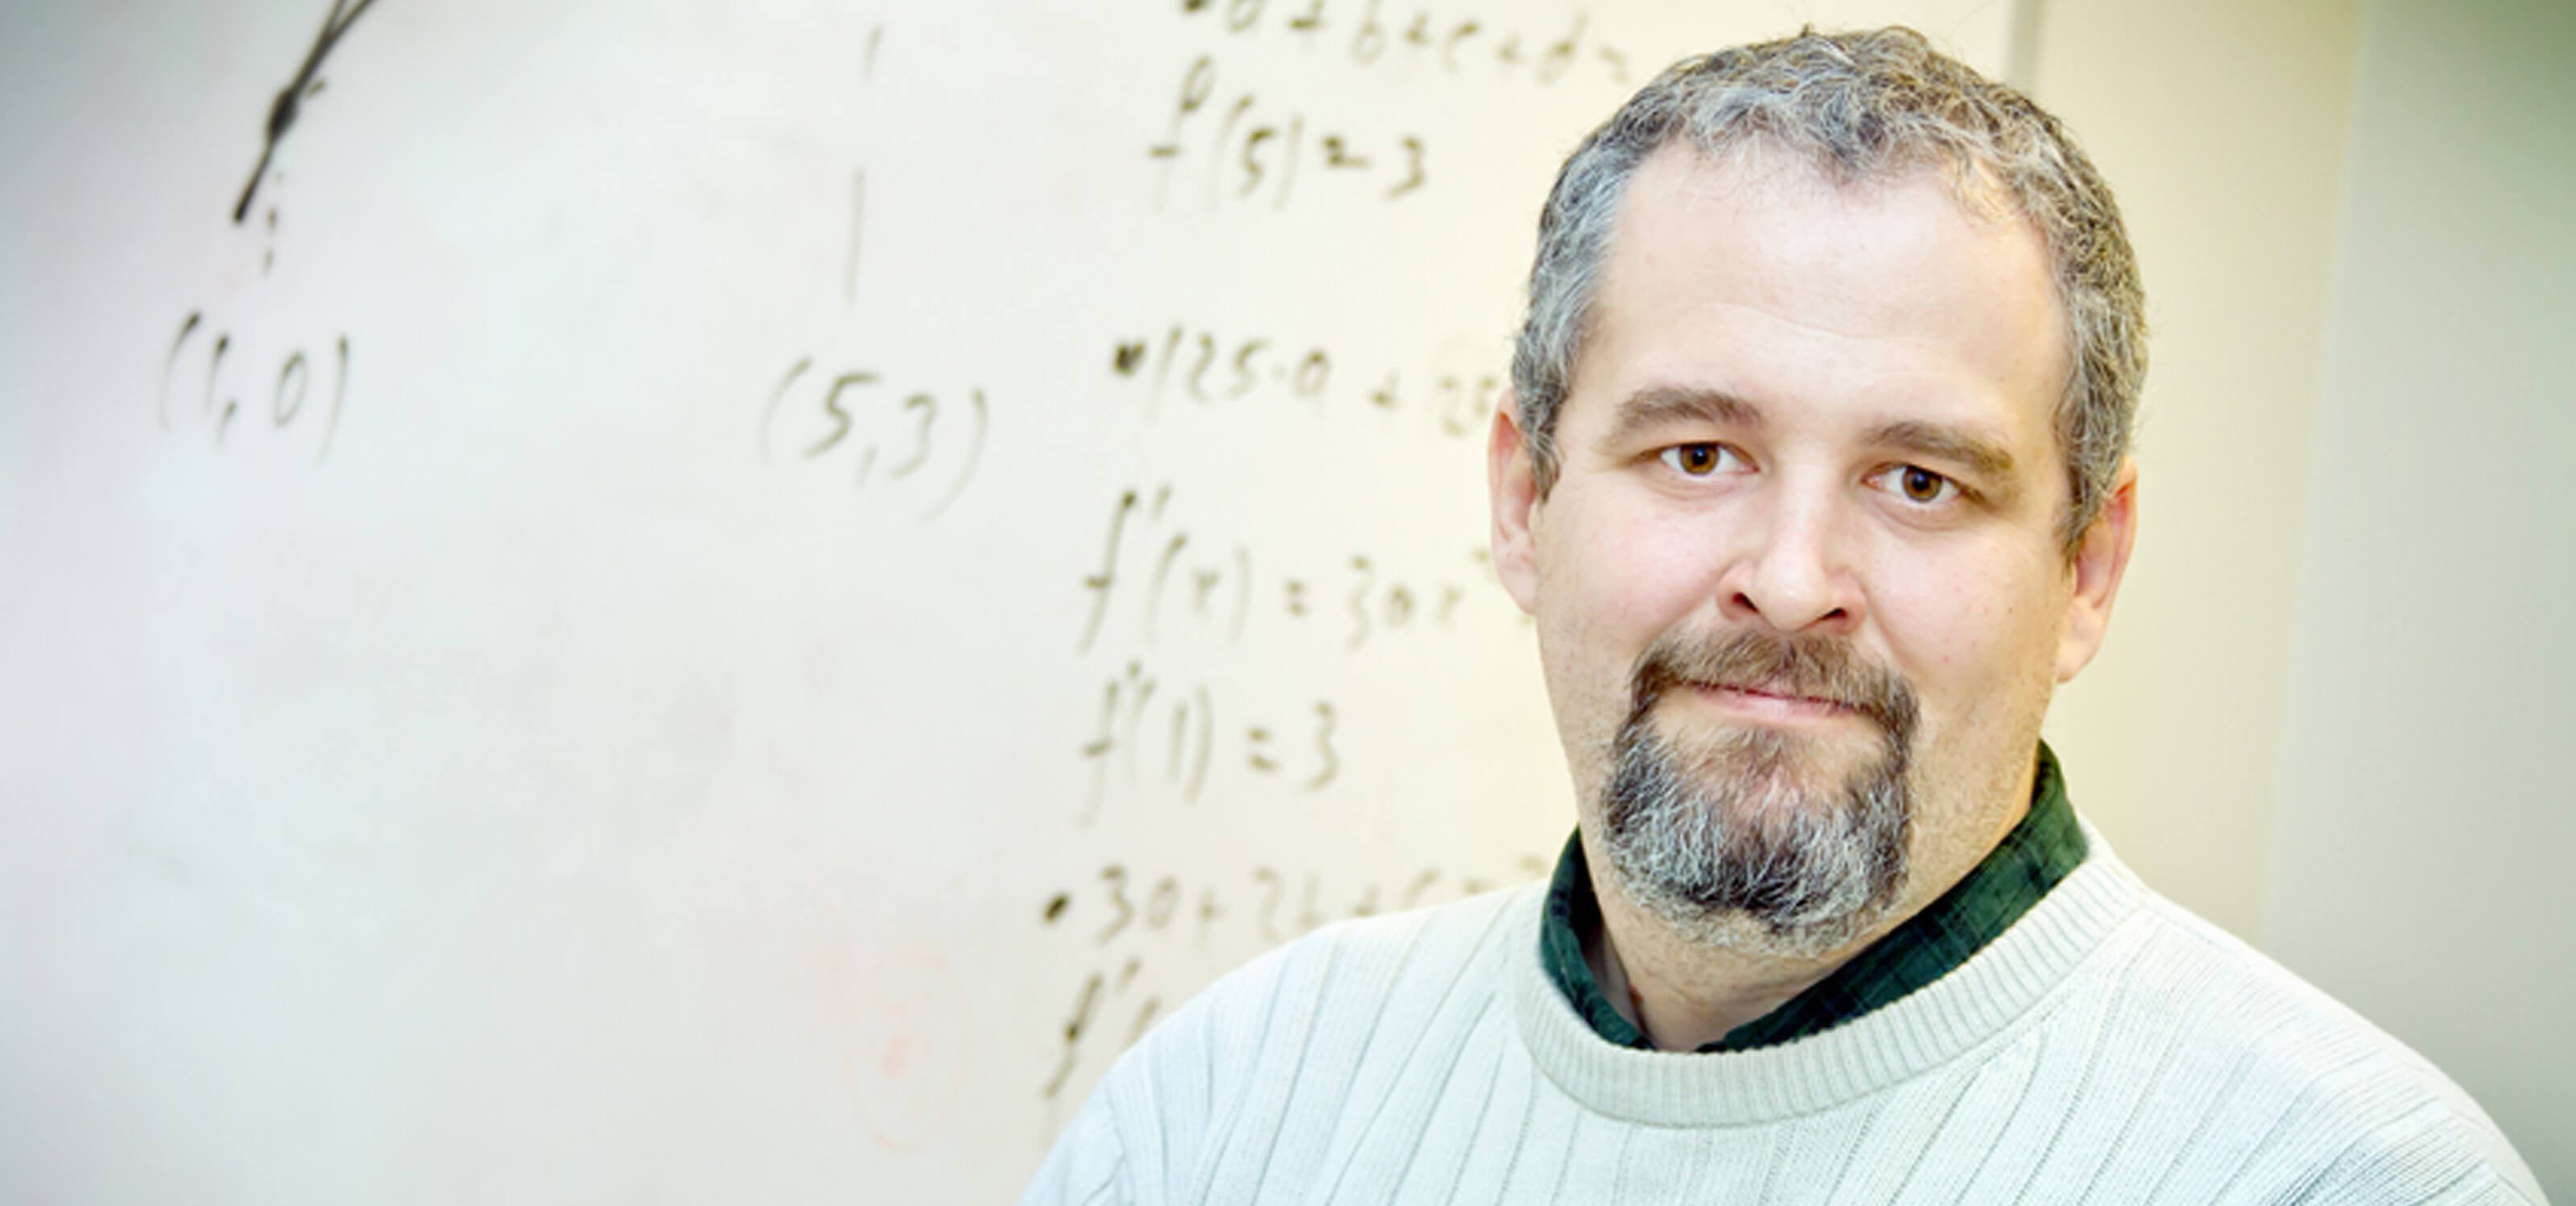 DigiPen mathematics professor Barnabas Bede smiling in front of a whiteboard decorated with mathematical formulas